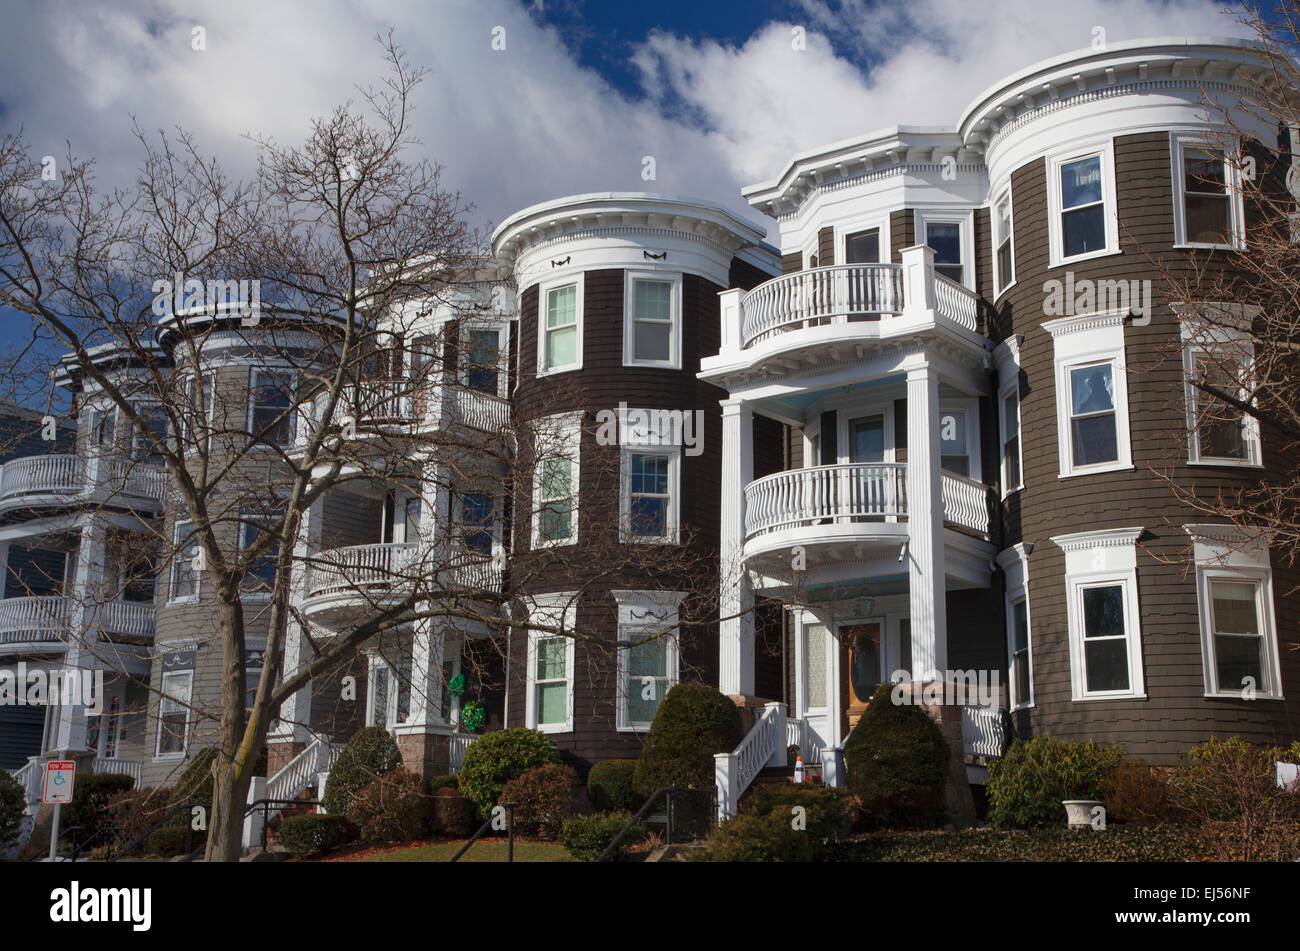 Upscale condos and homes of South Boston, Massachusetts, USA - Stock Image